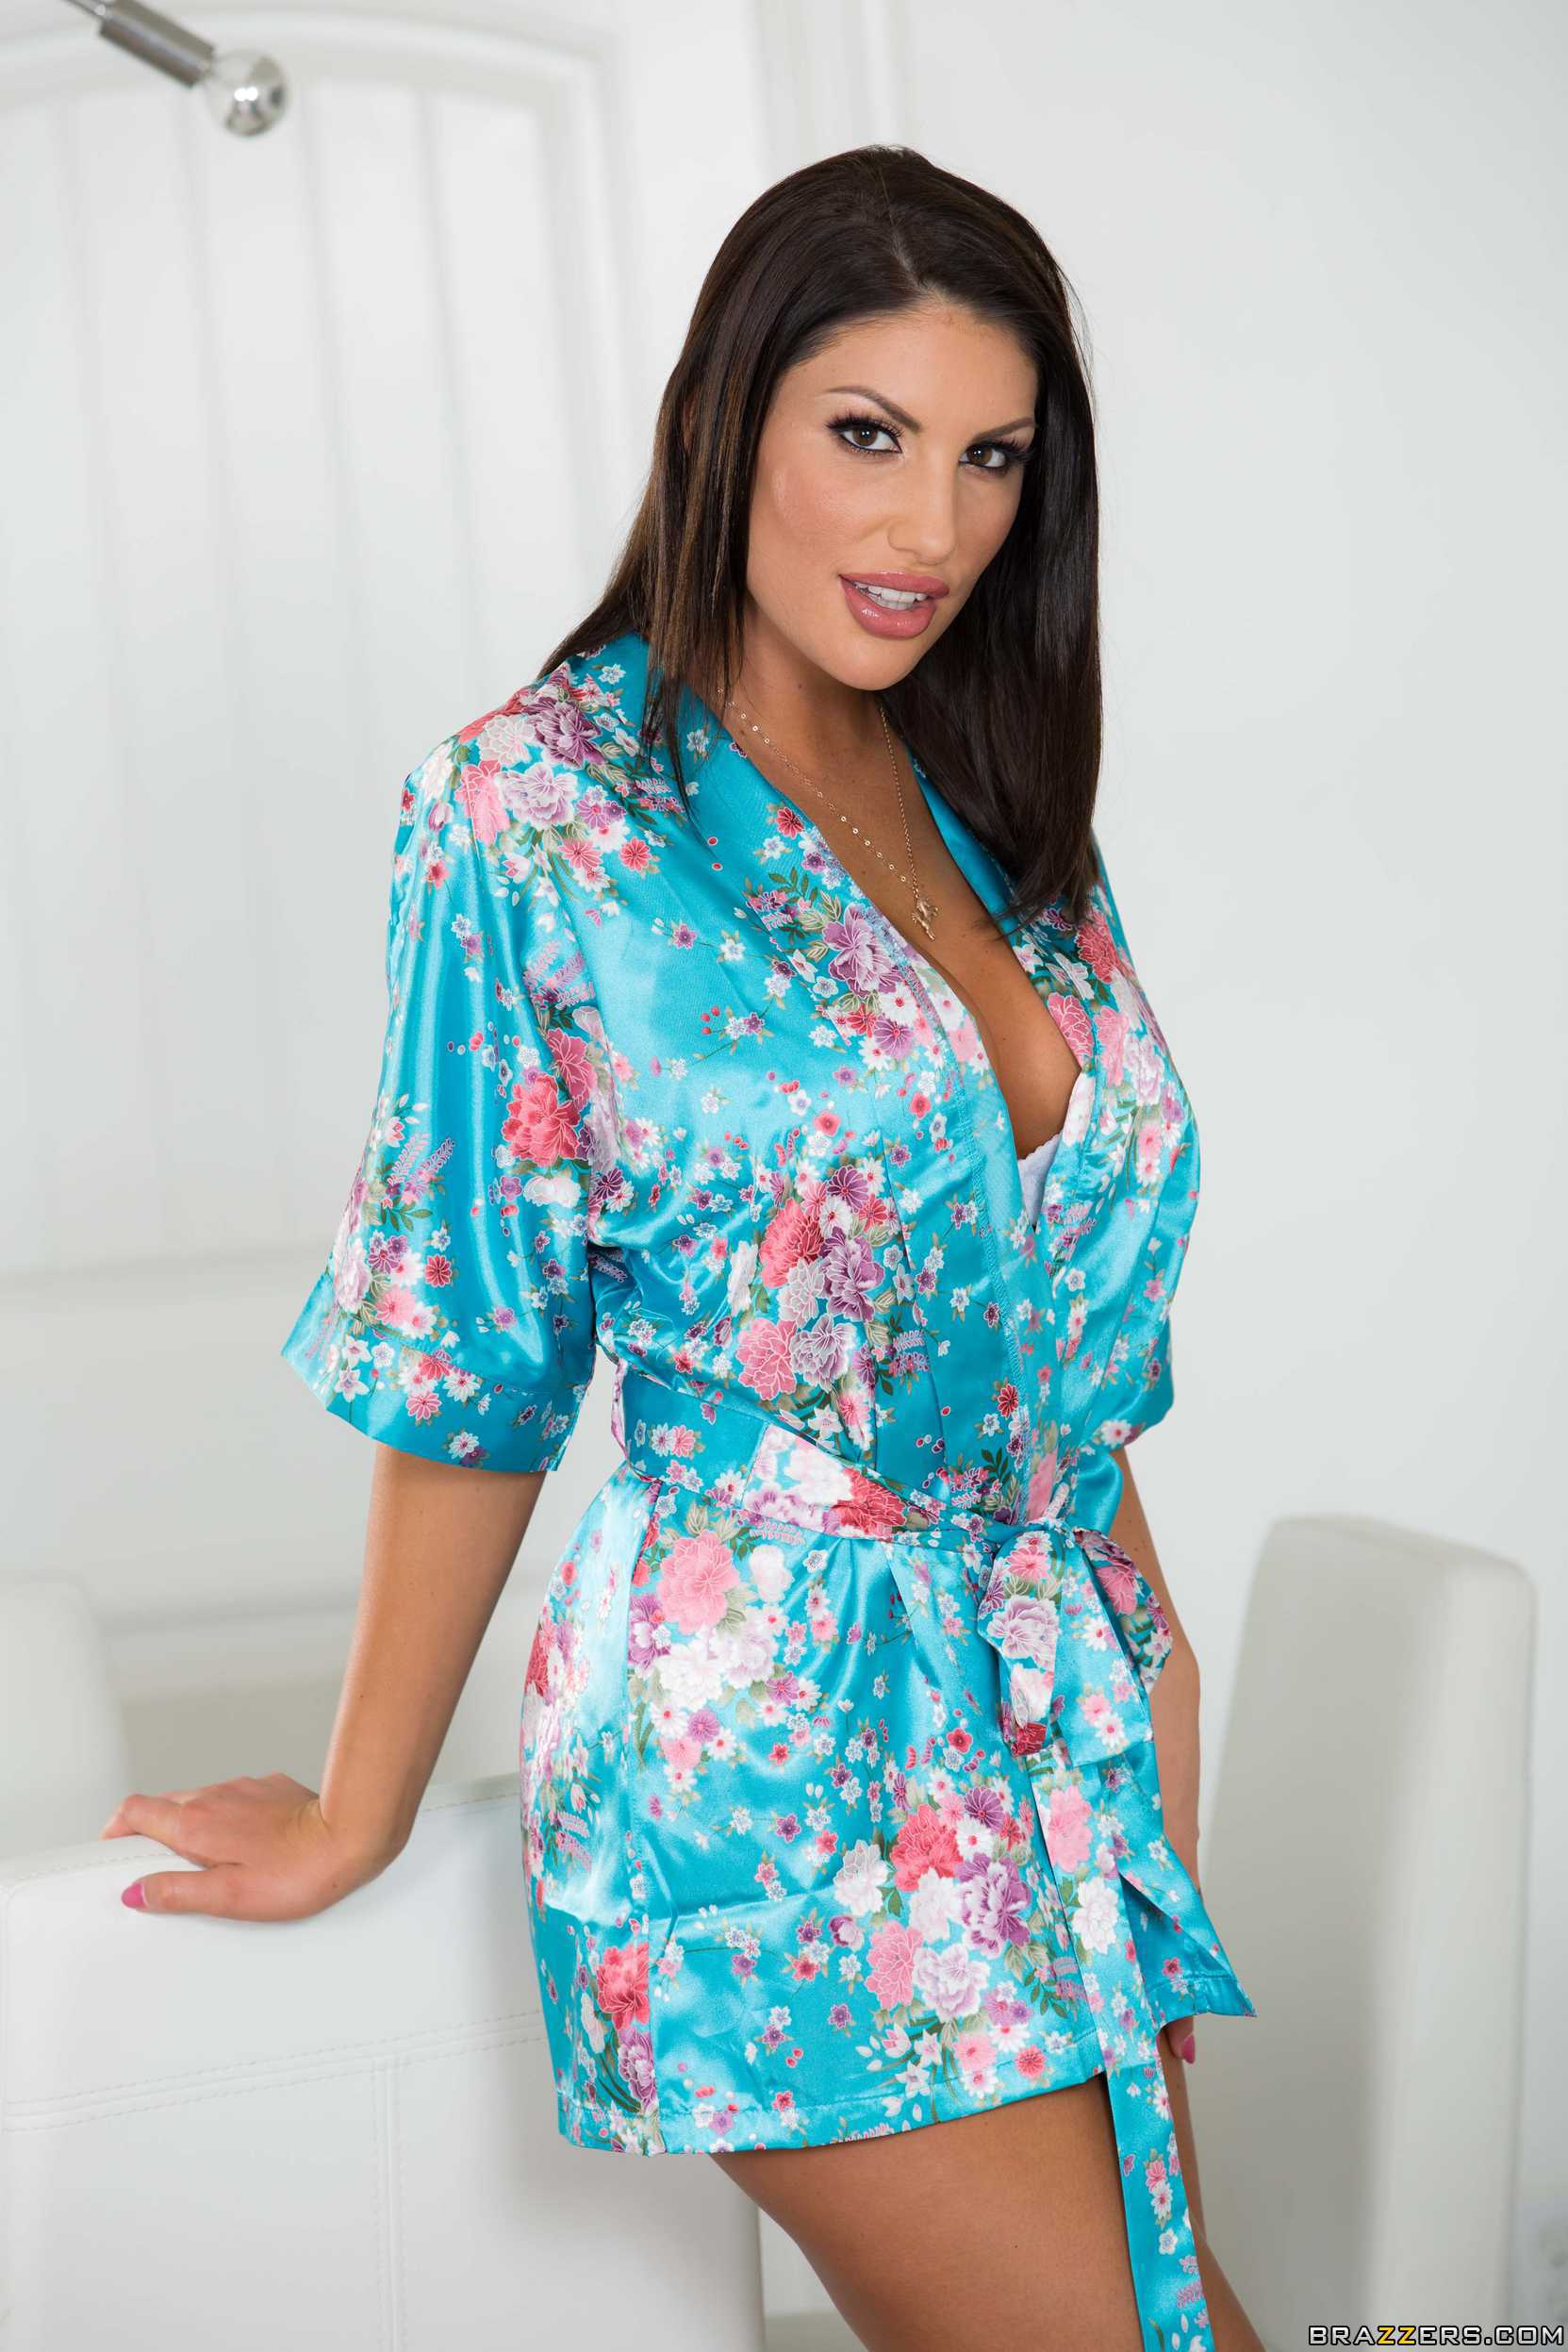 August ames didnt ring the doorbell